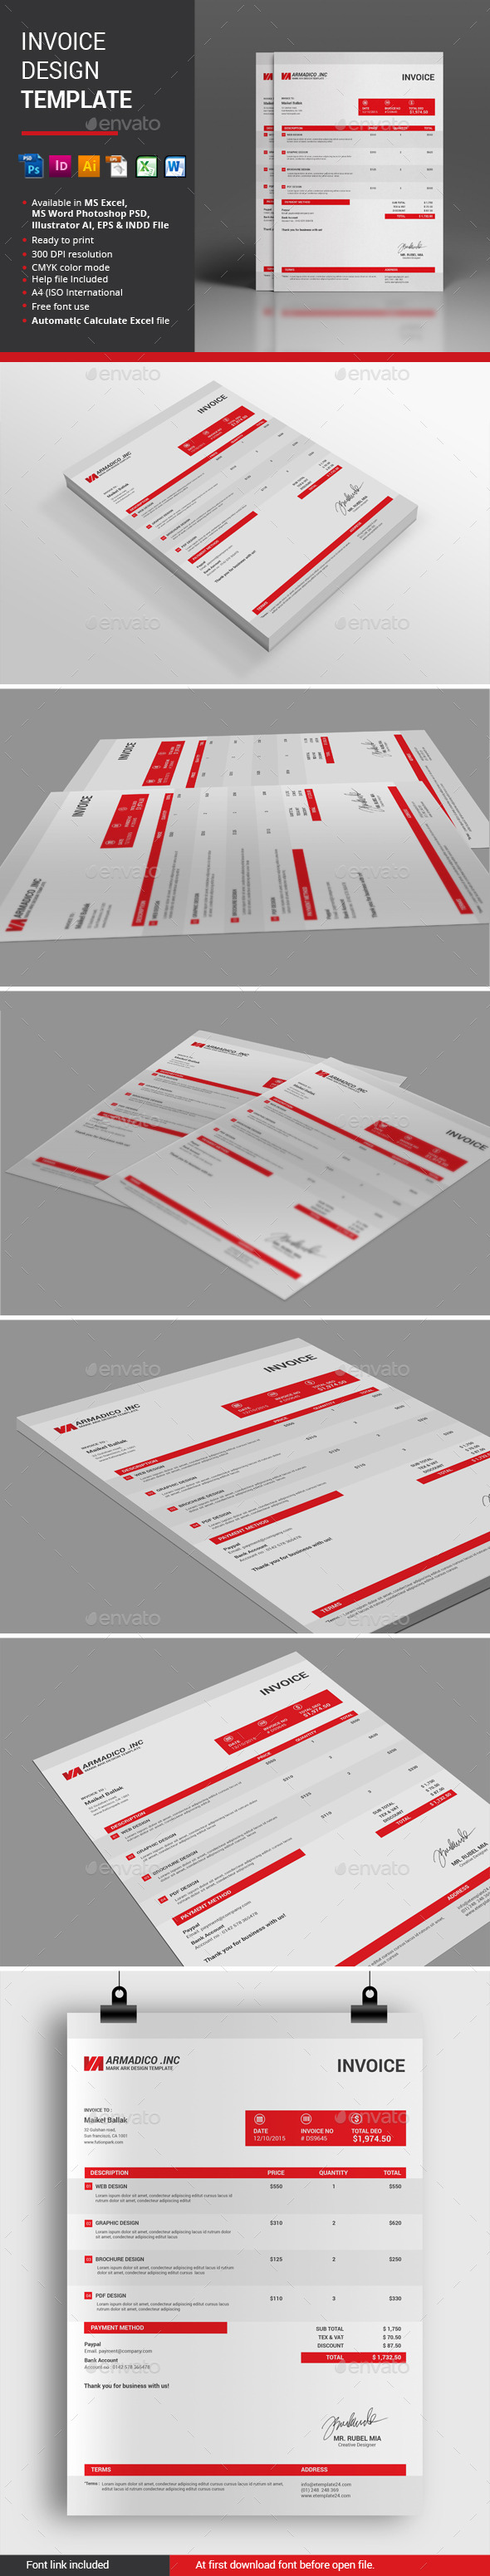 Invoice Desgin Template - Proposals & Invoices Stationery